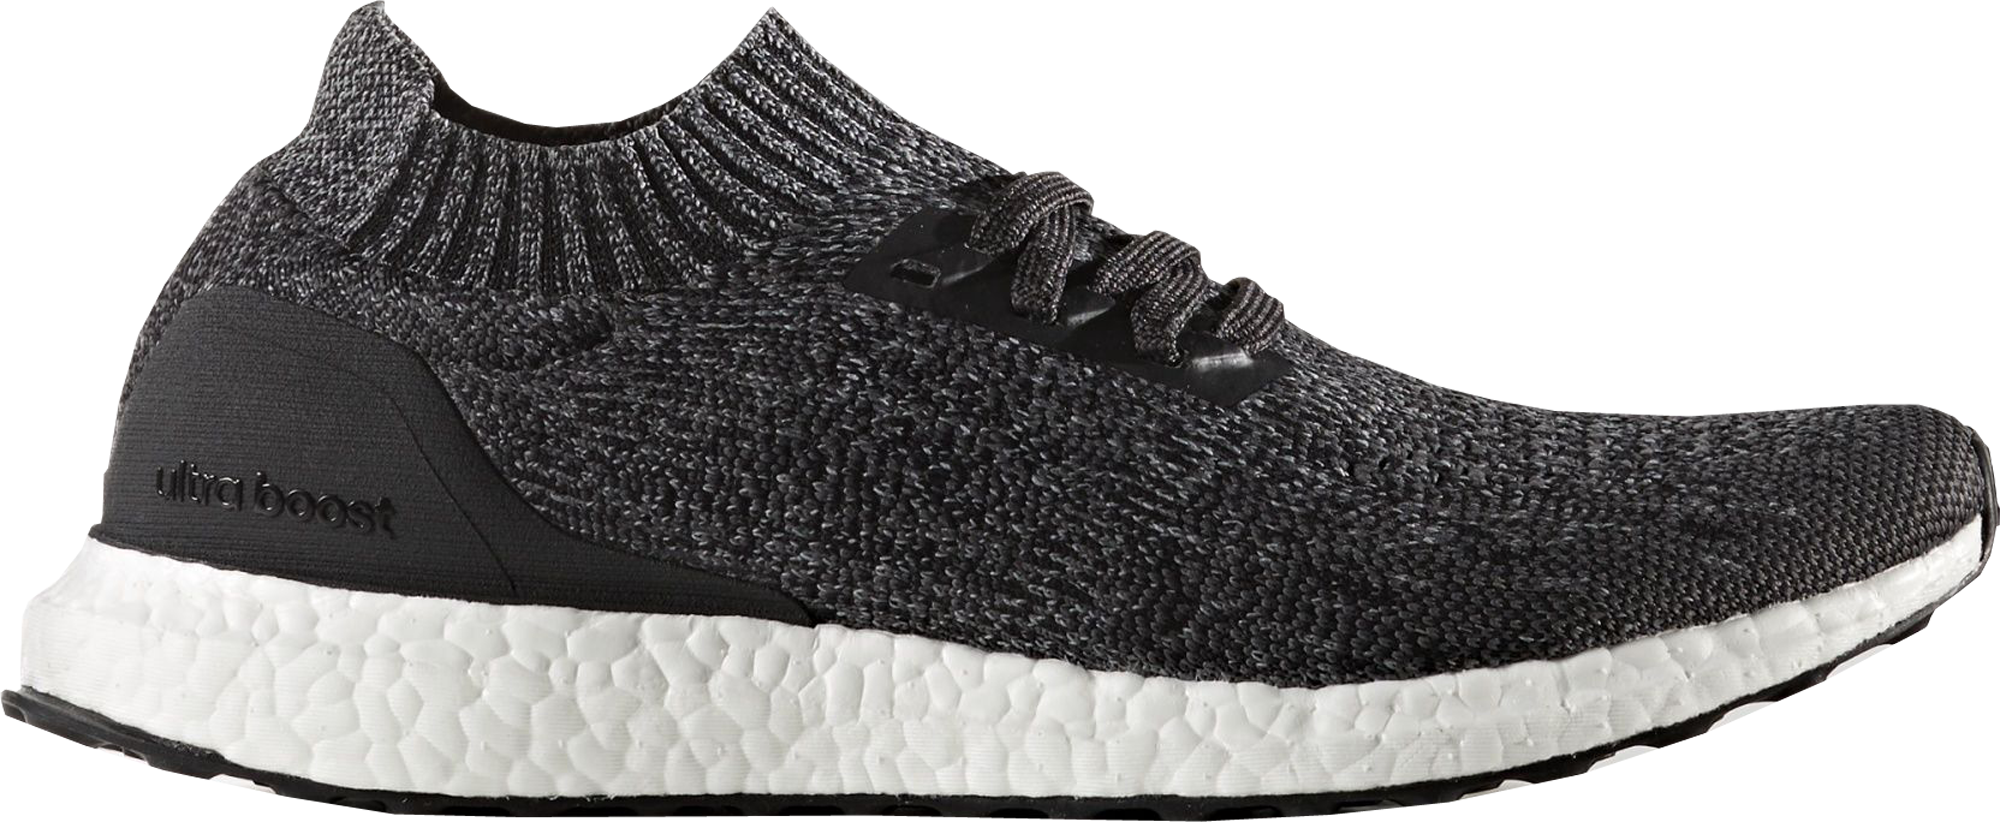 befee7137 adidas ultra boost uncaged womens review adidas ultra boost 30 oreo ...